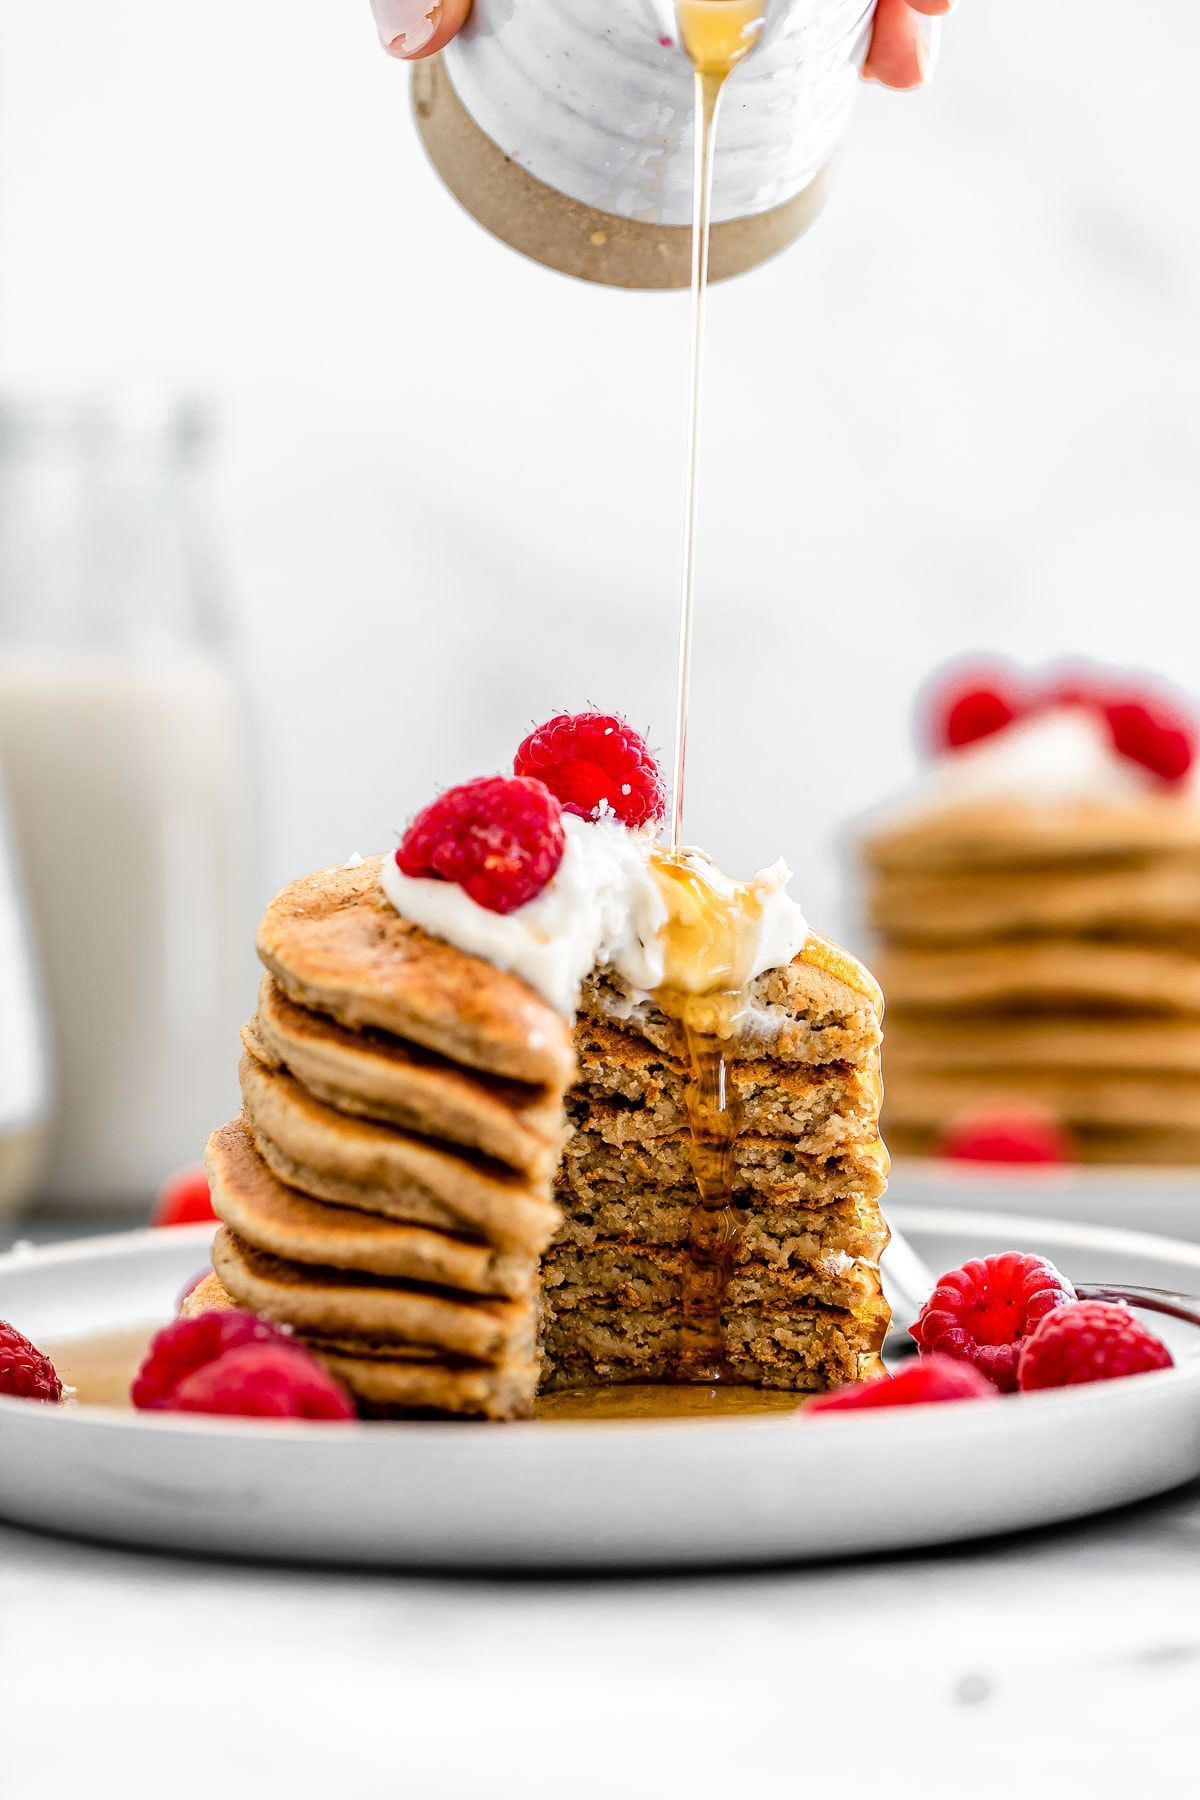 Vegan gluten free pancakes cut to show the texture.